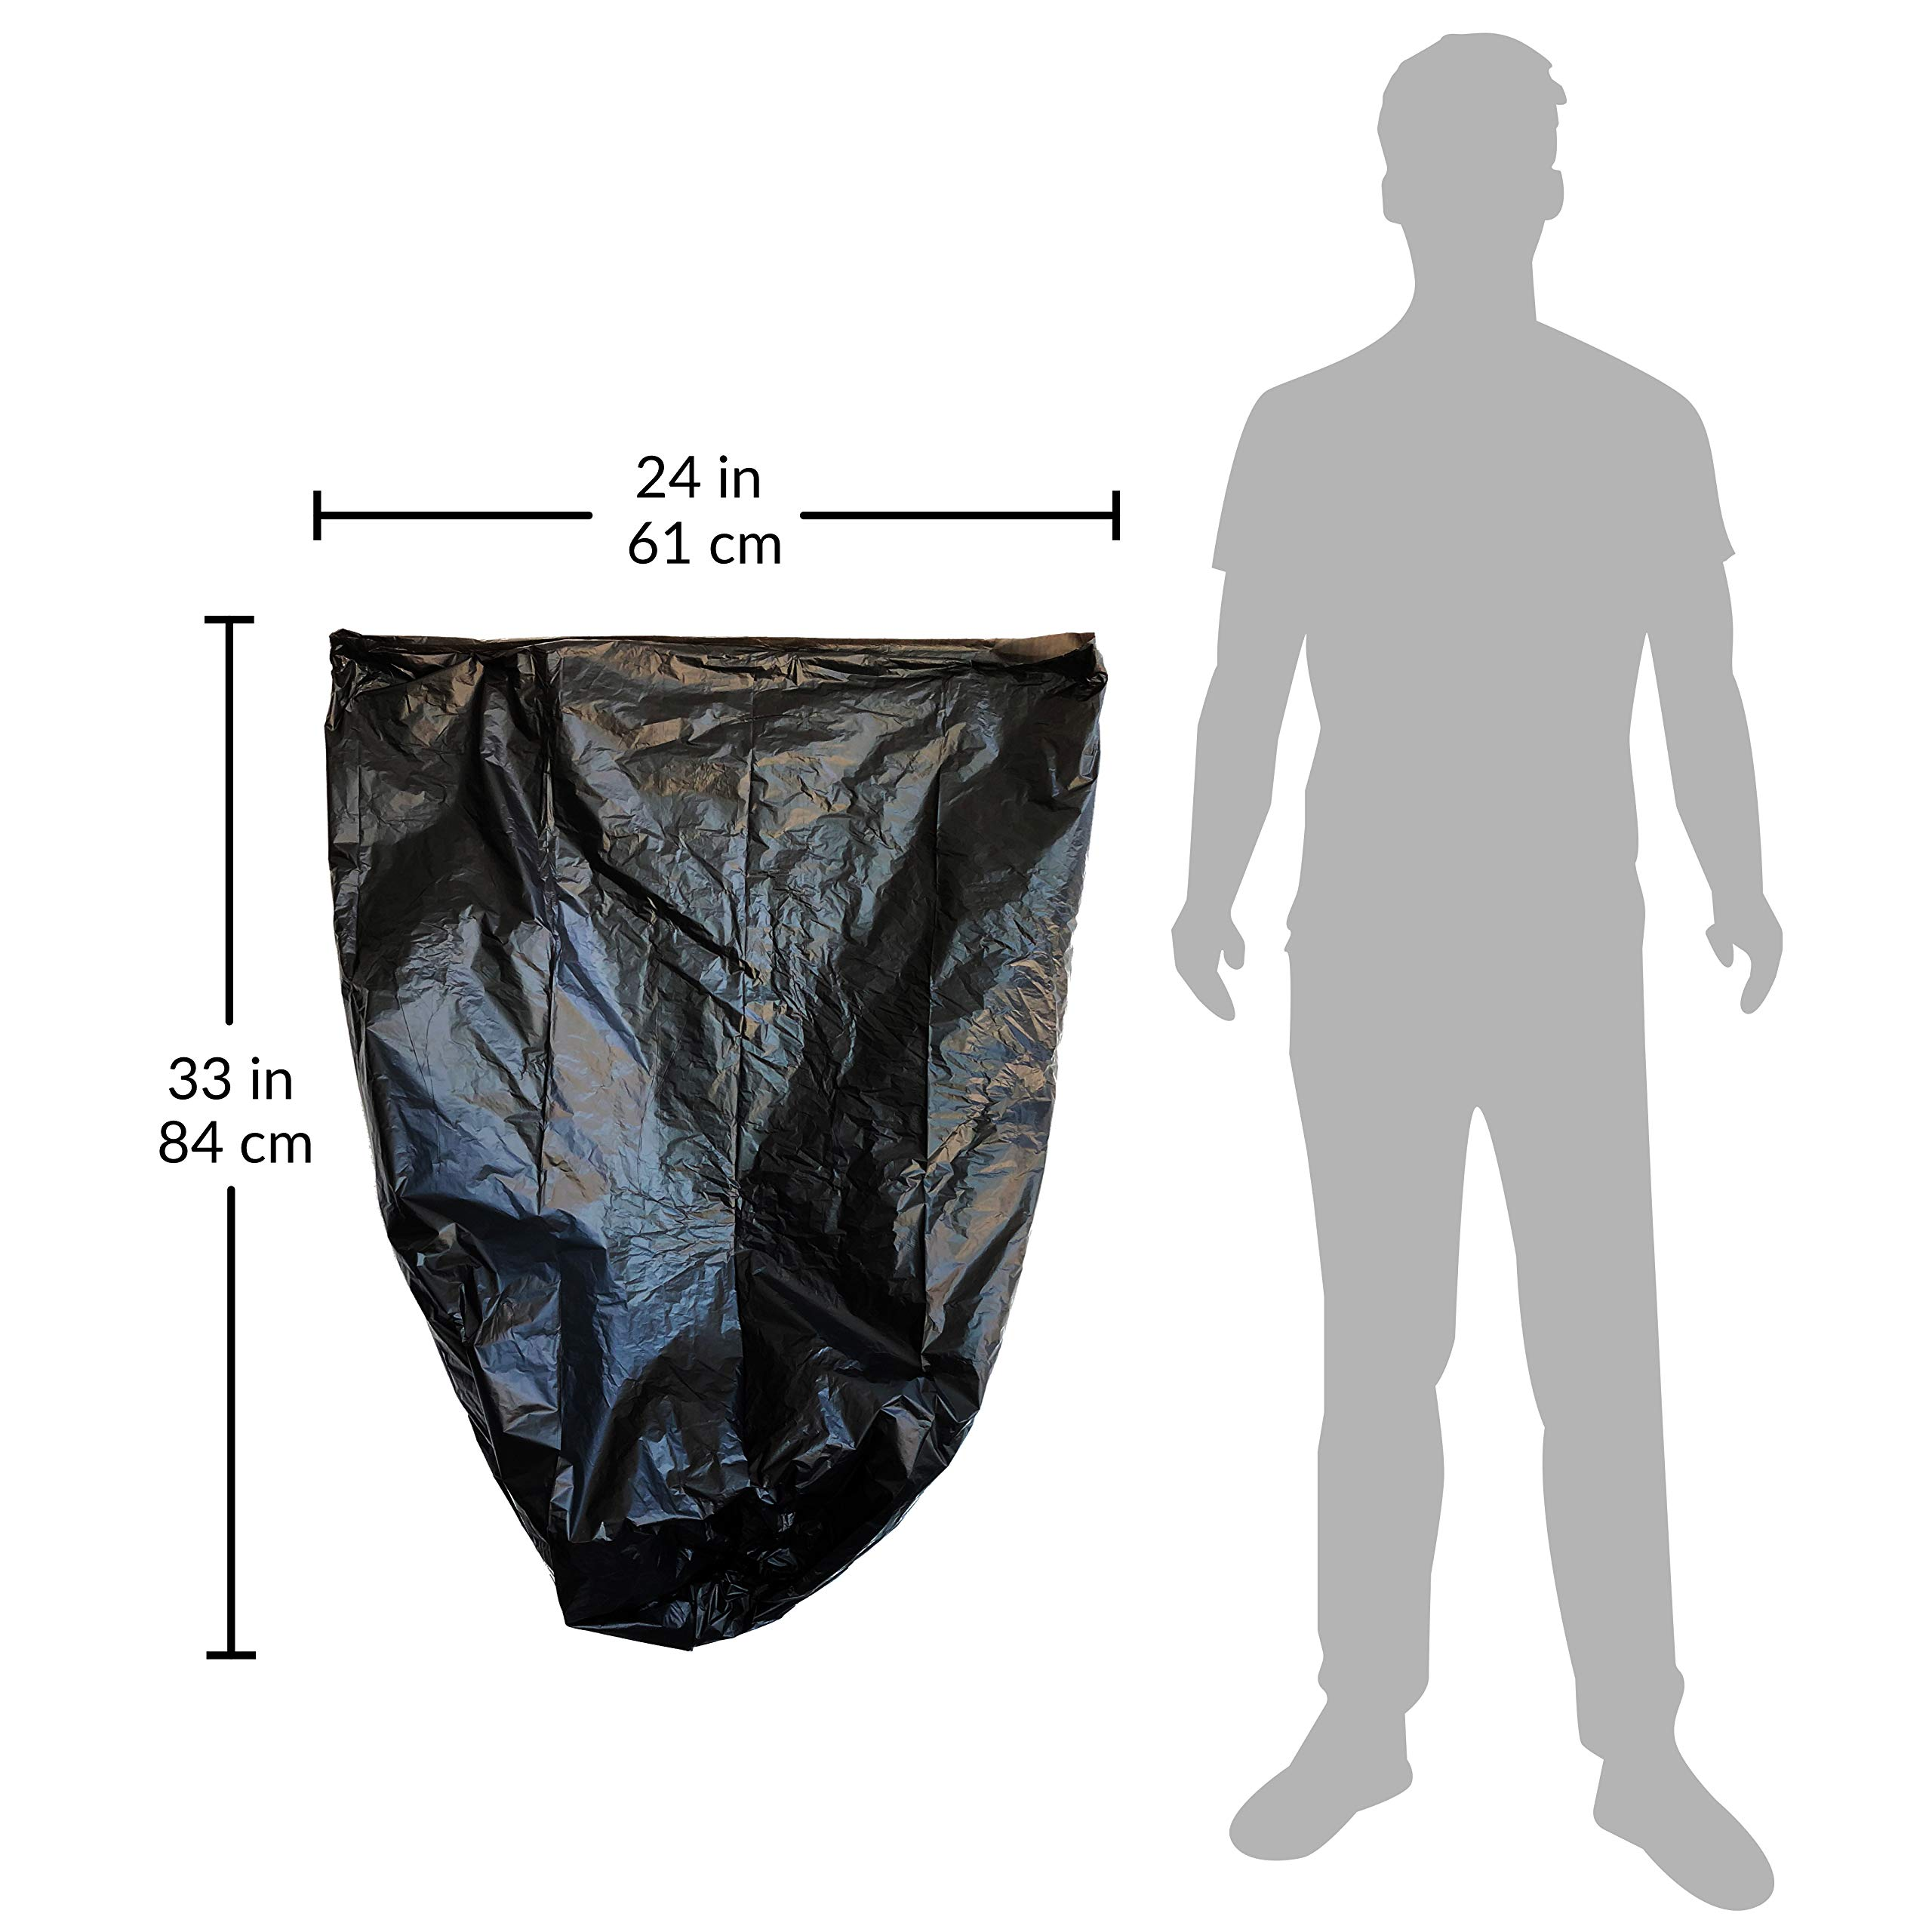 Reli. Trash Bags, 13 Gallon (Wholesale 1000 Count) (Black) - Can Liners, Garbage Bags with 13 Gallon (13 Gal) to 16 Gallon (16 Gal) Capacity by Reli. (Image #6)